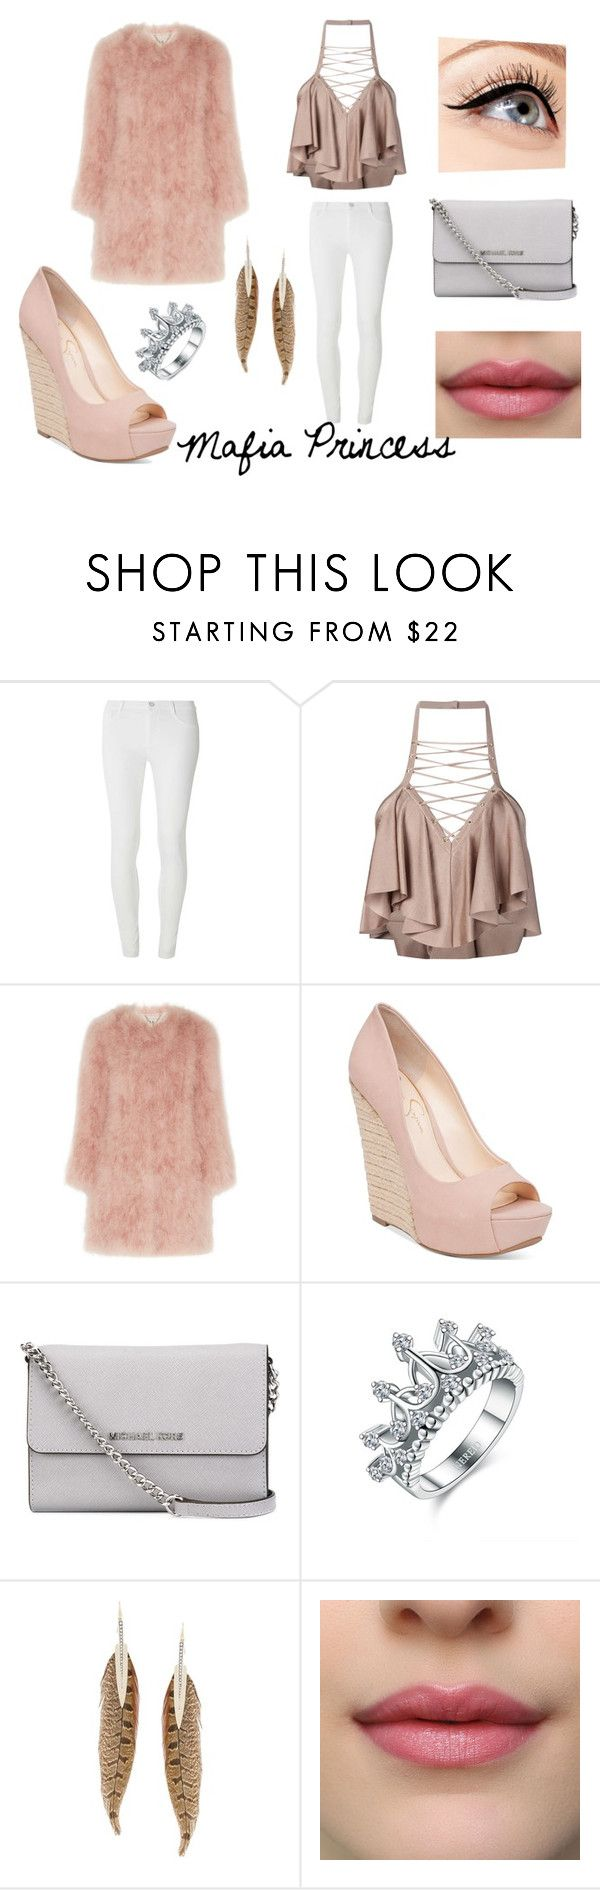 """Mafia Princess - Clarke, capítulo 8"" by carol-garcia-f on Polyvore featuring Dorothy Perkins, Balmain, Topshop Unique, Jessica Simpson, MICHAEL Michael Kors, Roberto Cavalli e Luminess Air"